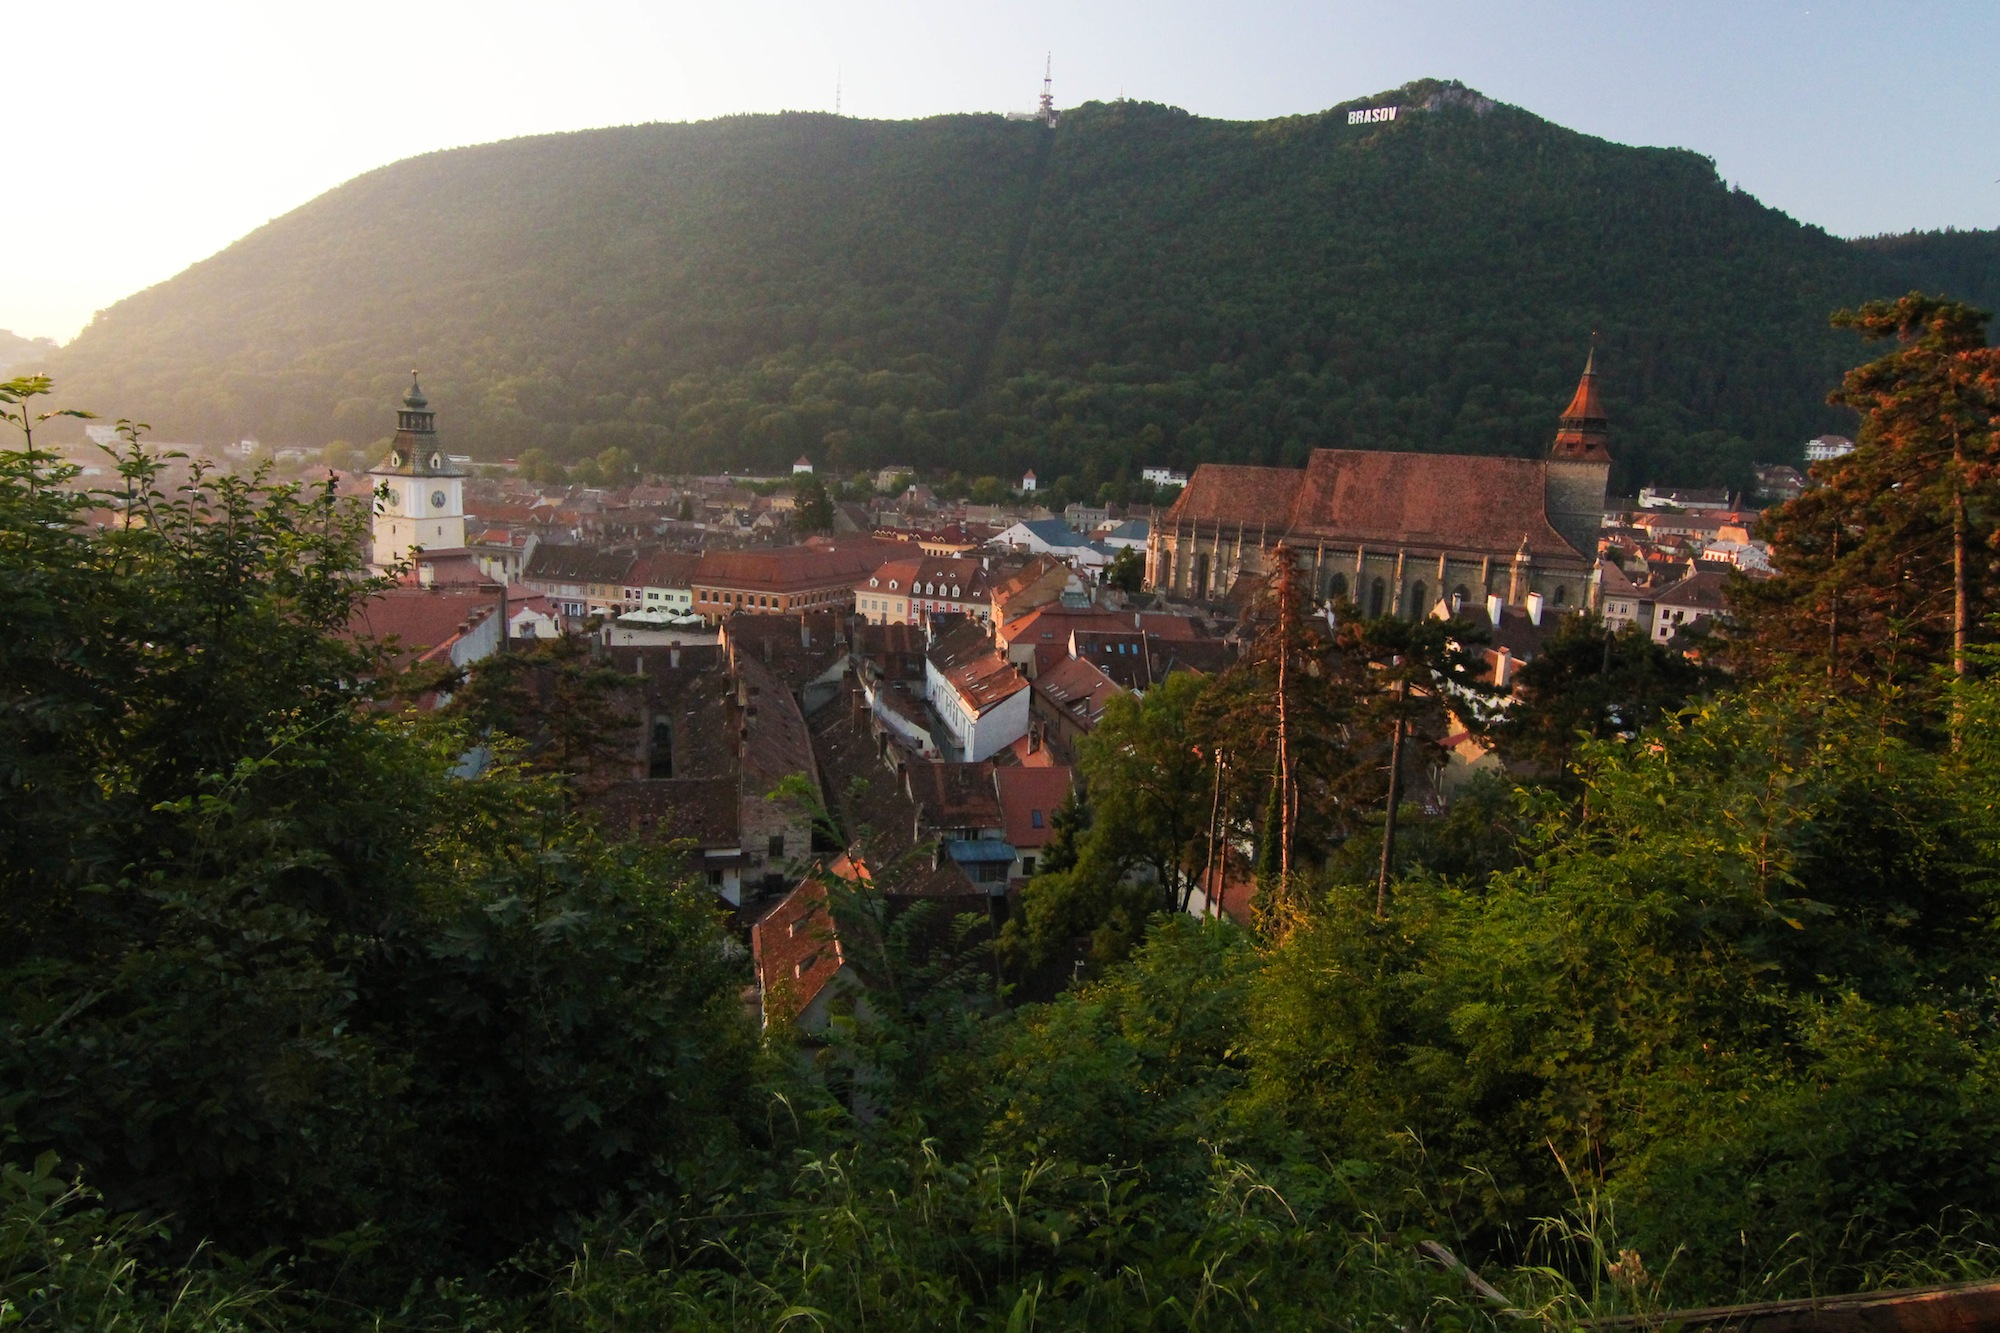 The Old Town Hall (left) and Black Church (right) in Brasov